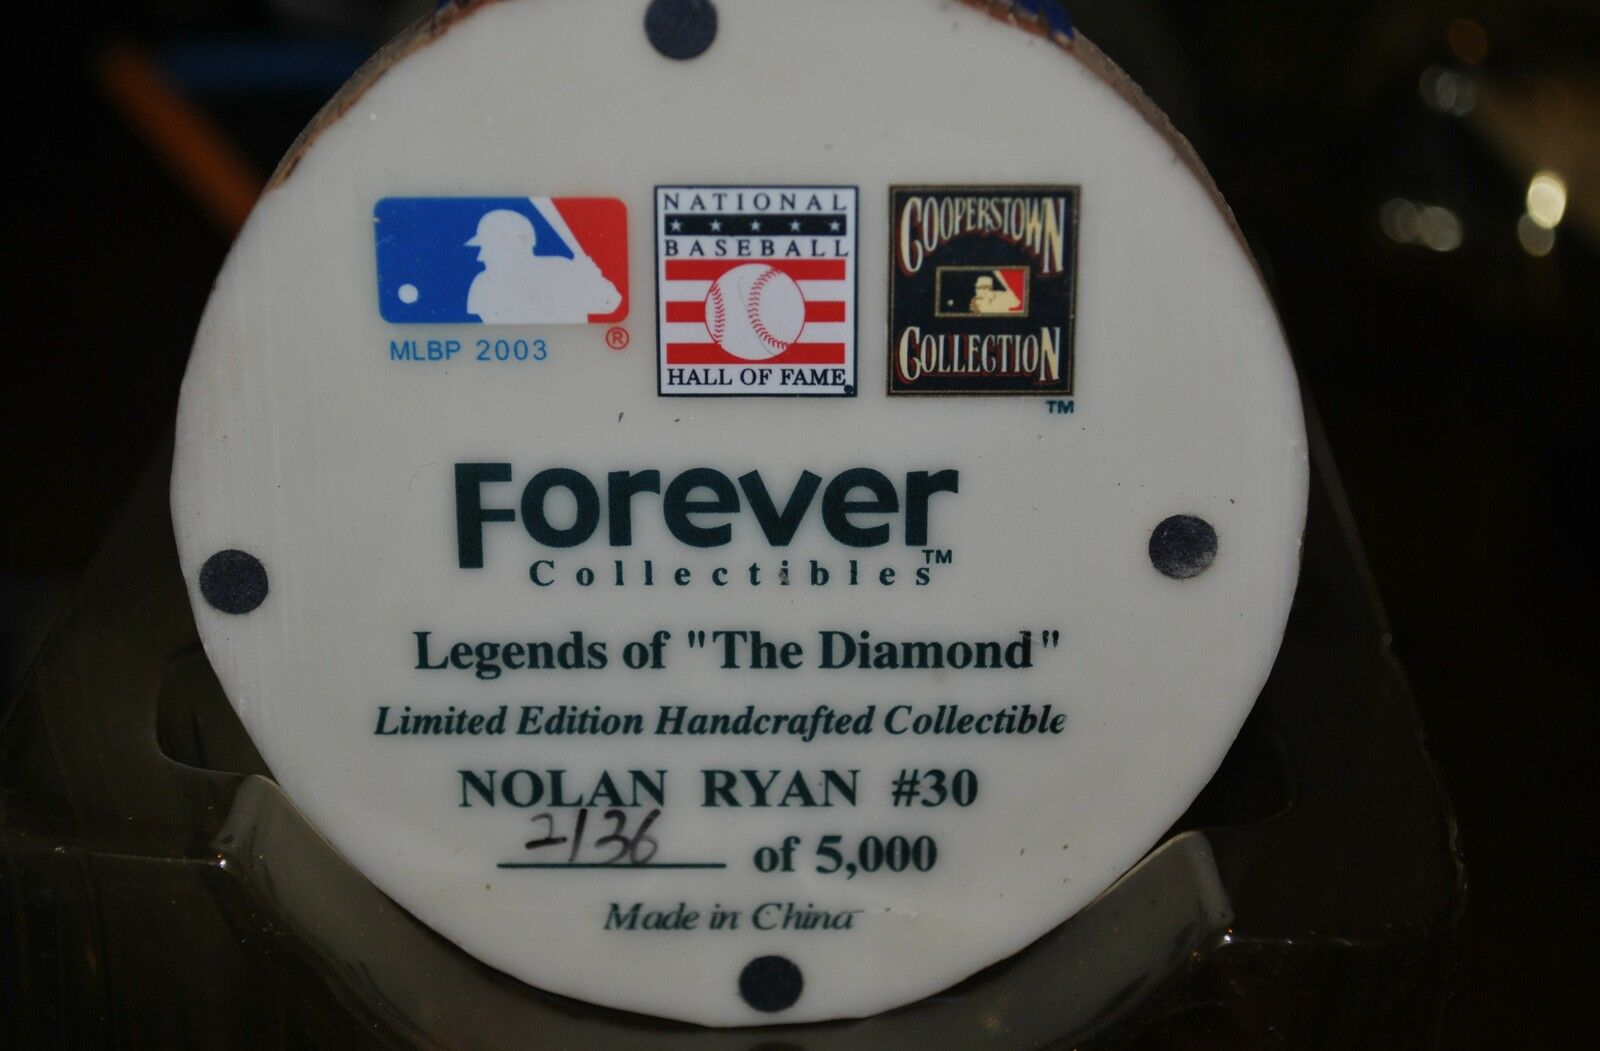 NOLAN RYAN METS METS RYAN   30 FOREVER LIMITED EDITION COLLECTIBLE COOPERSTOWN 2136 / 5000 be8d25